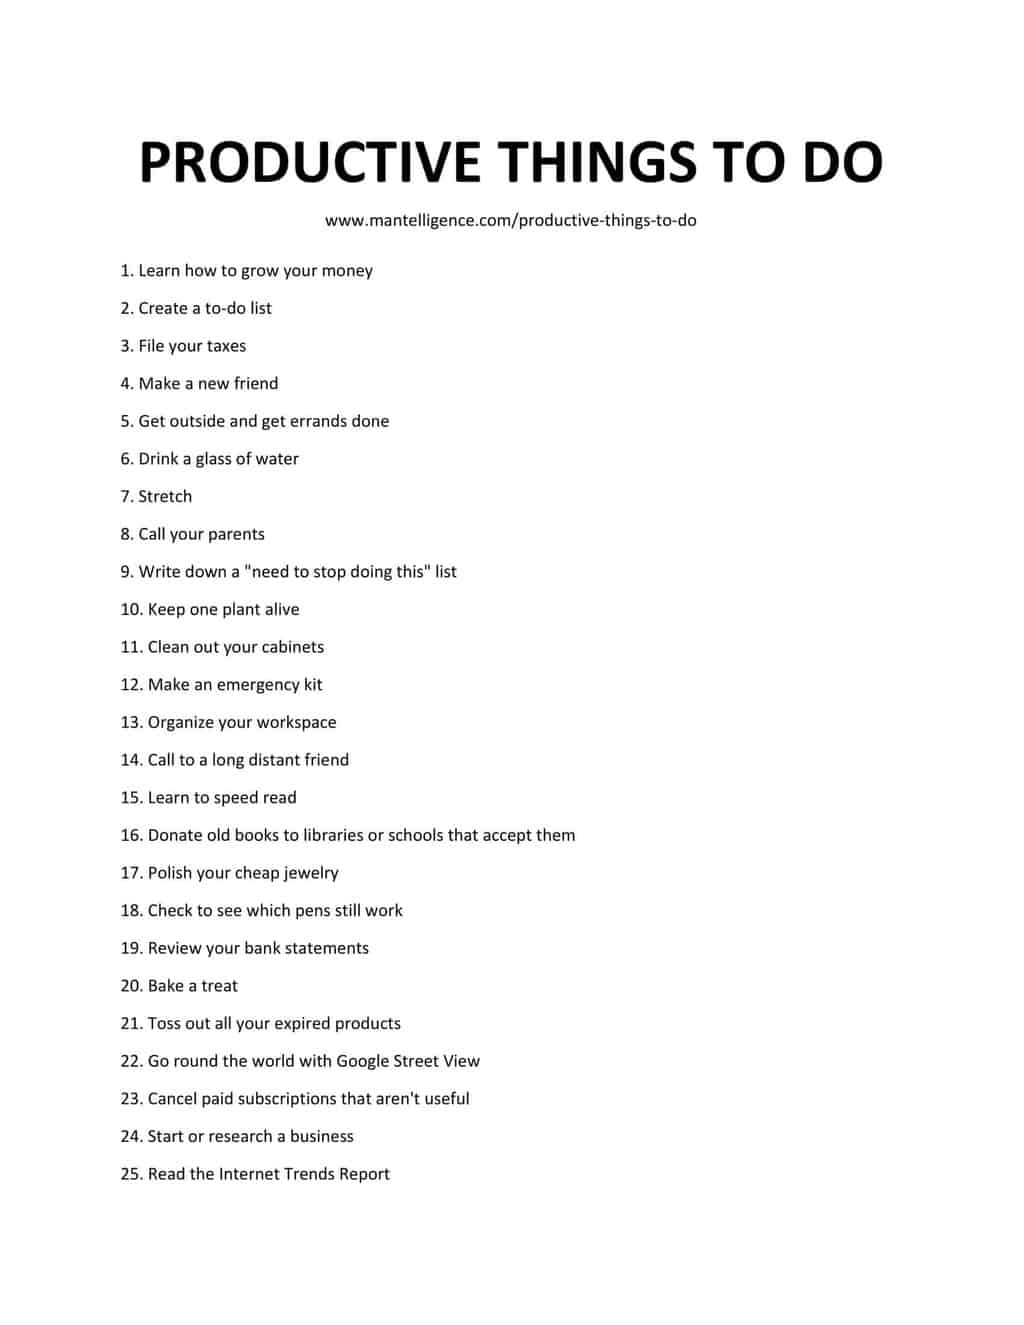 Downloadable list of productive things to do